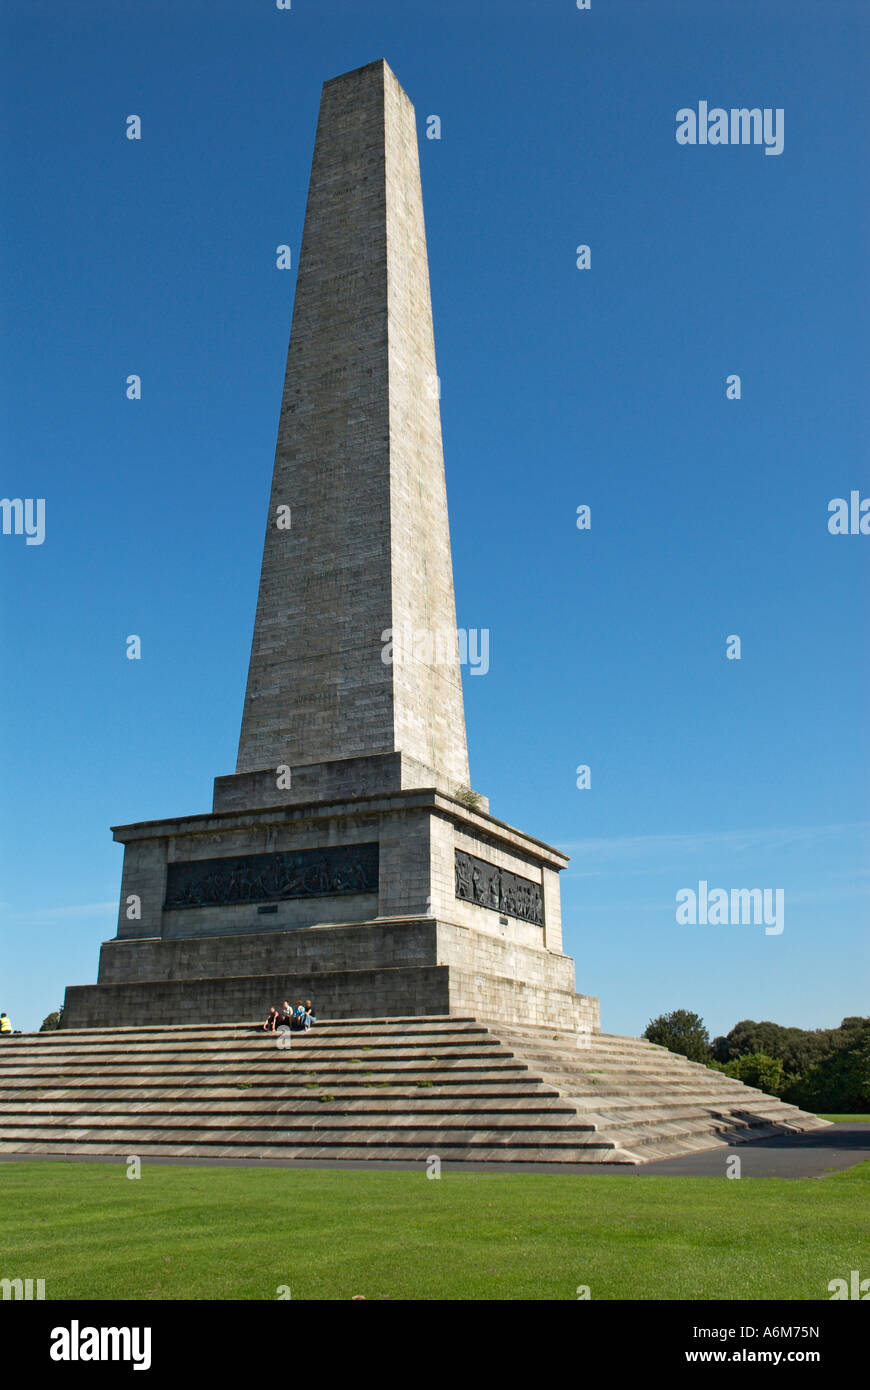 The Duke of Wellington memorial in Phoenix Park Dublin Ireland - Stock Image